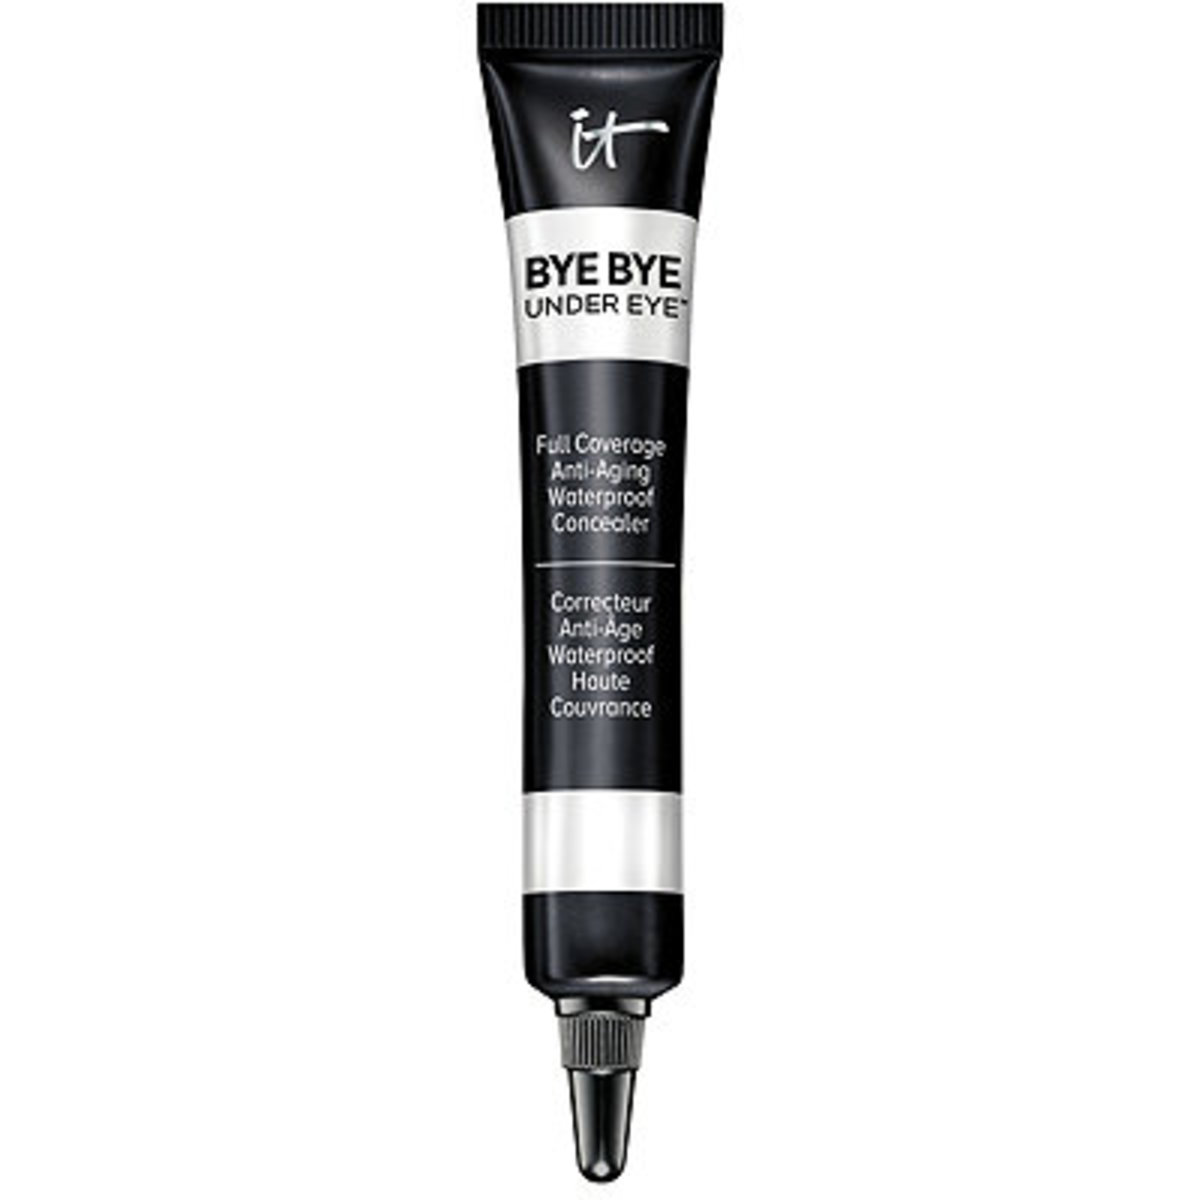 Review of the It Cosmetics Bye Bye Under Eye Concealer